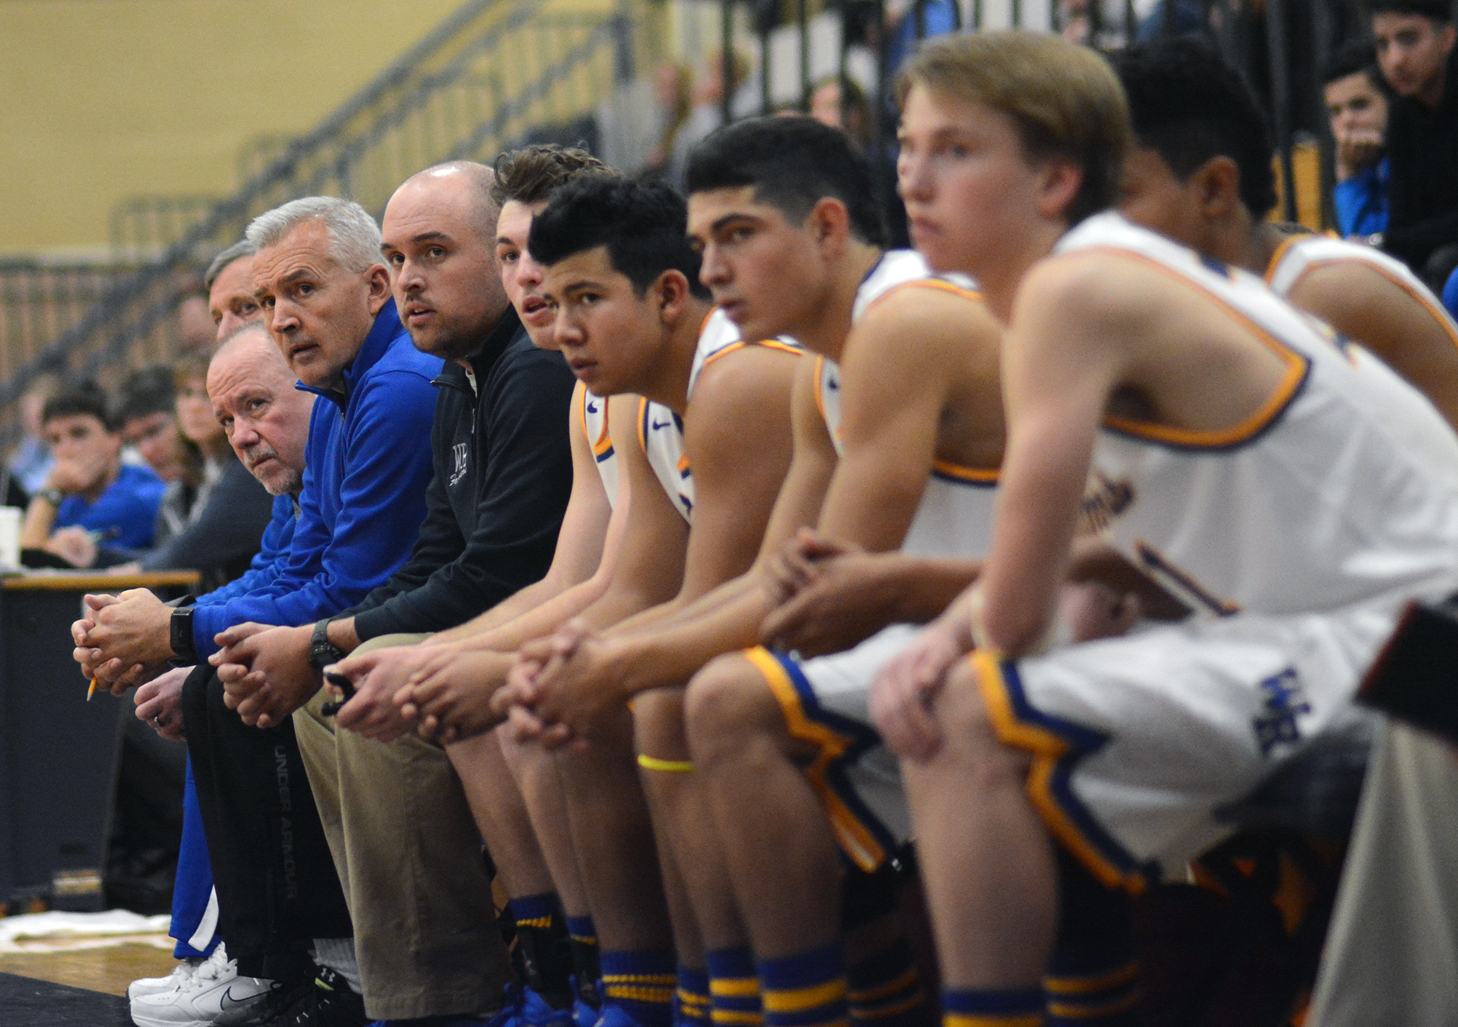 Coach Coach Dowd and boys' basketball team during a game.